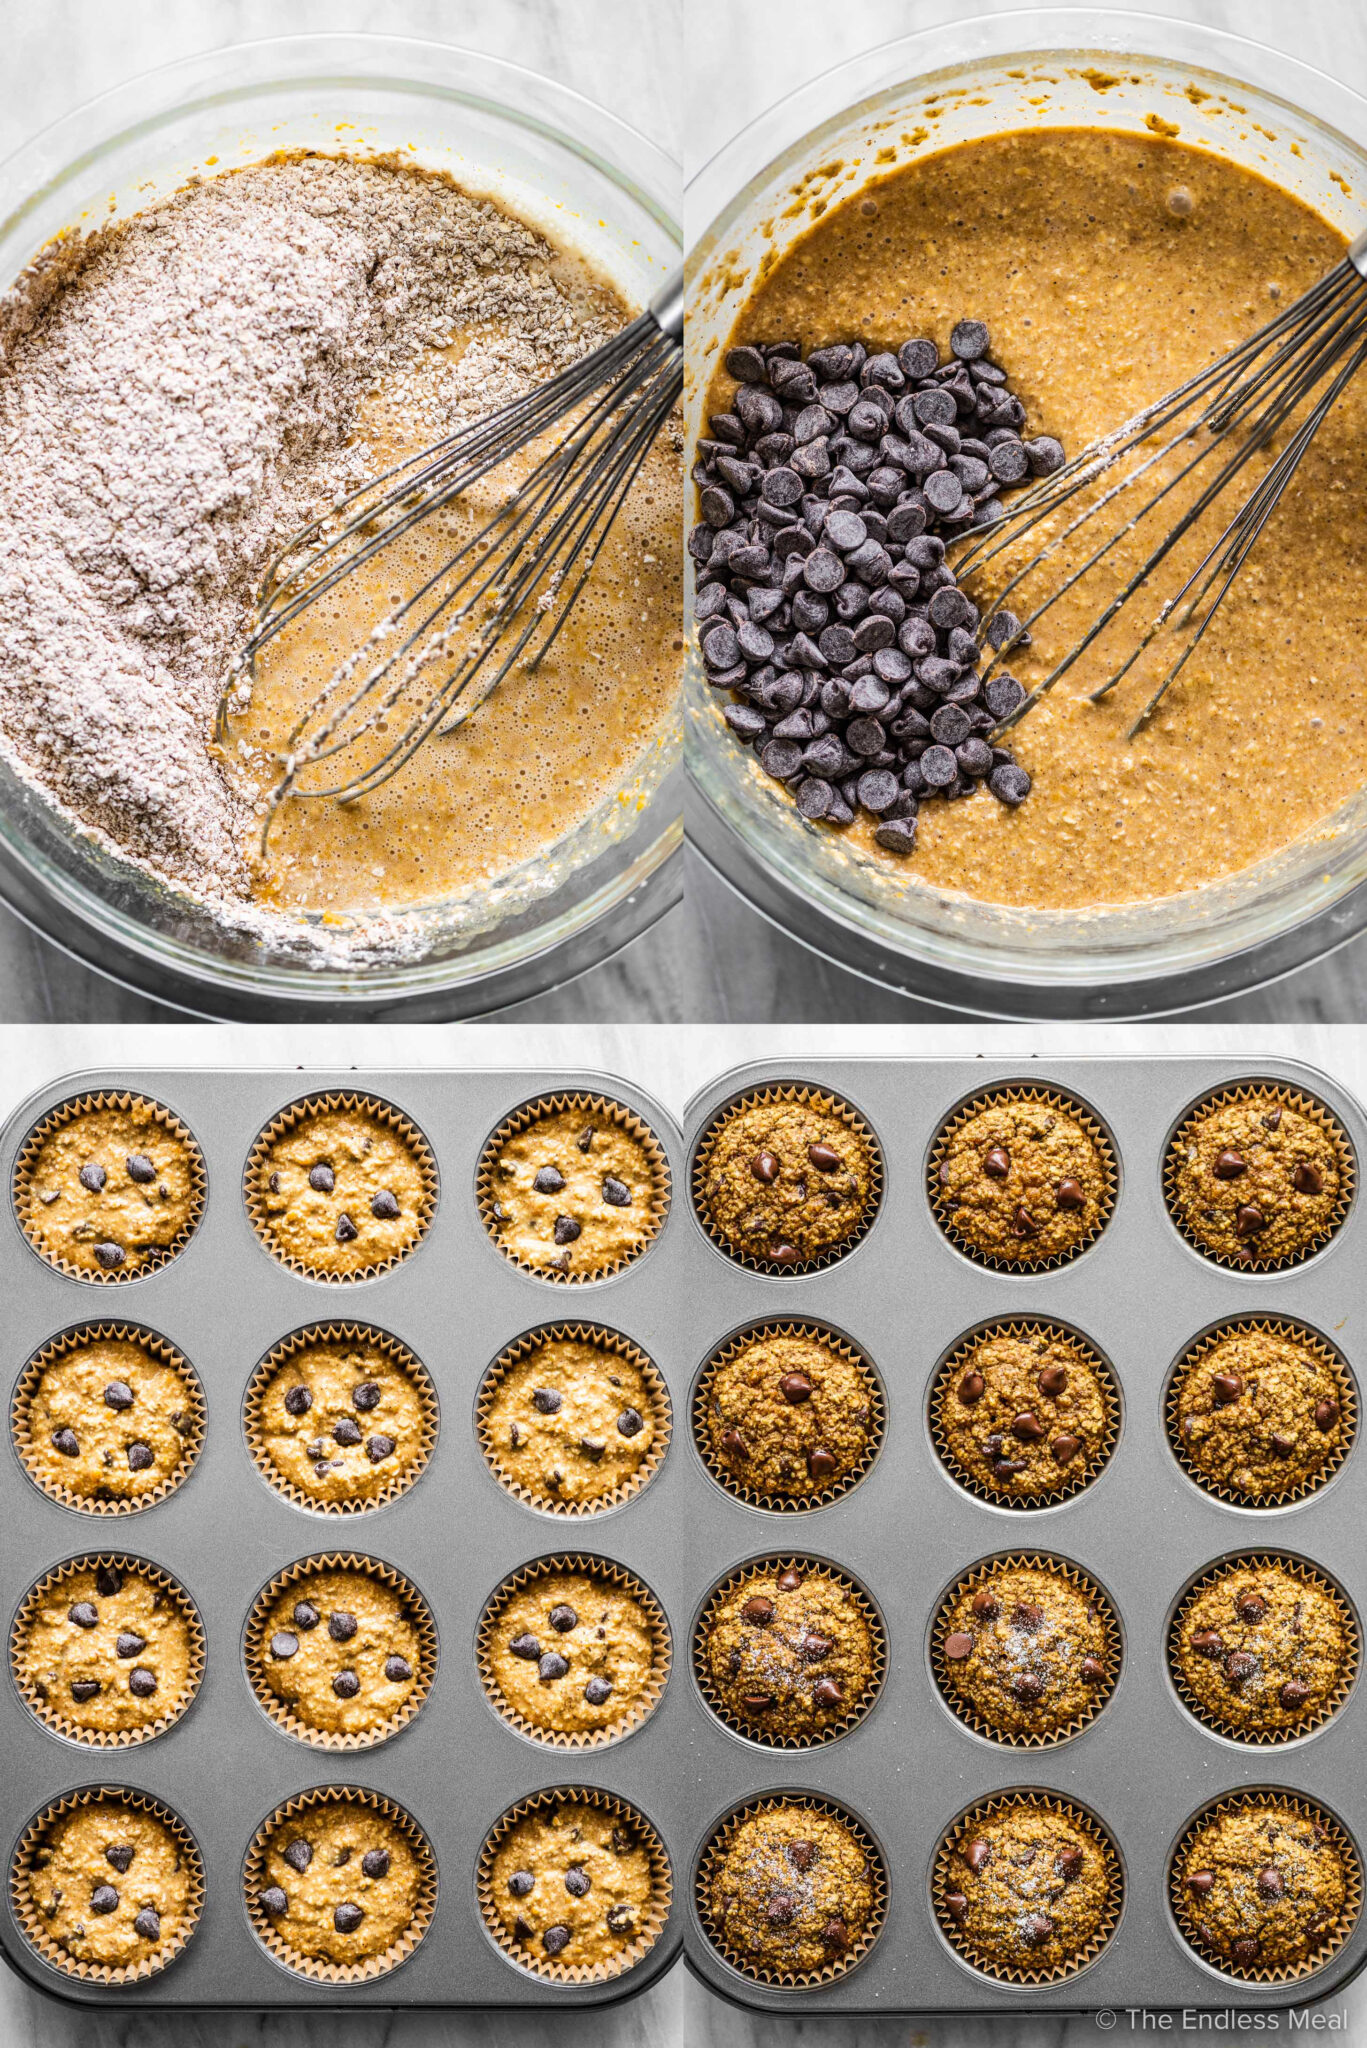 4 pictures showing the final steps in making pumpkin oat muffins.